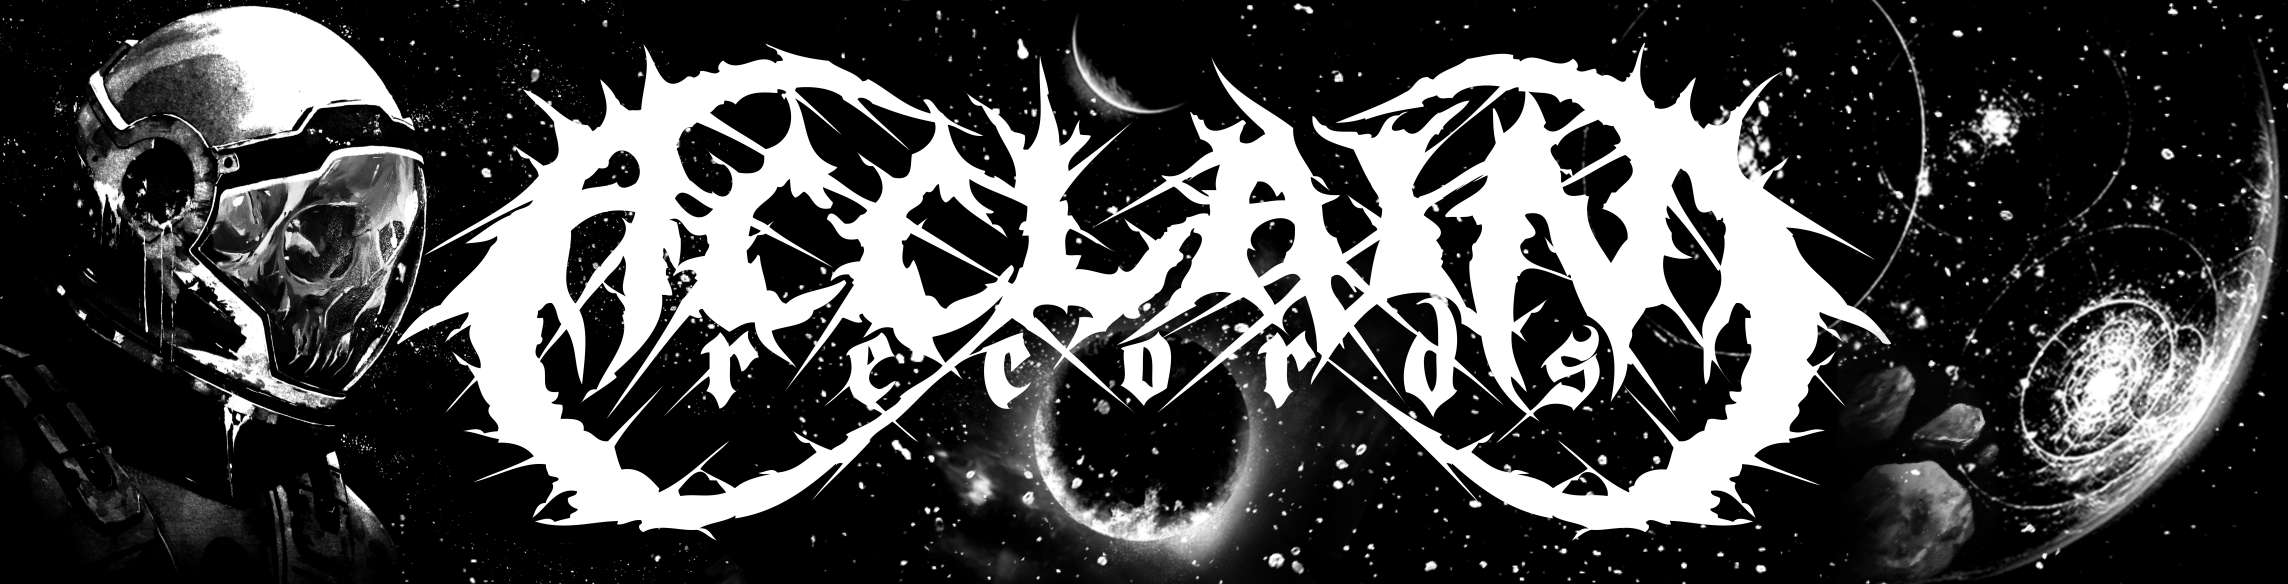 ACCLAIM RECORDS - Extreme Metal Music Label